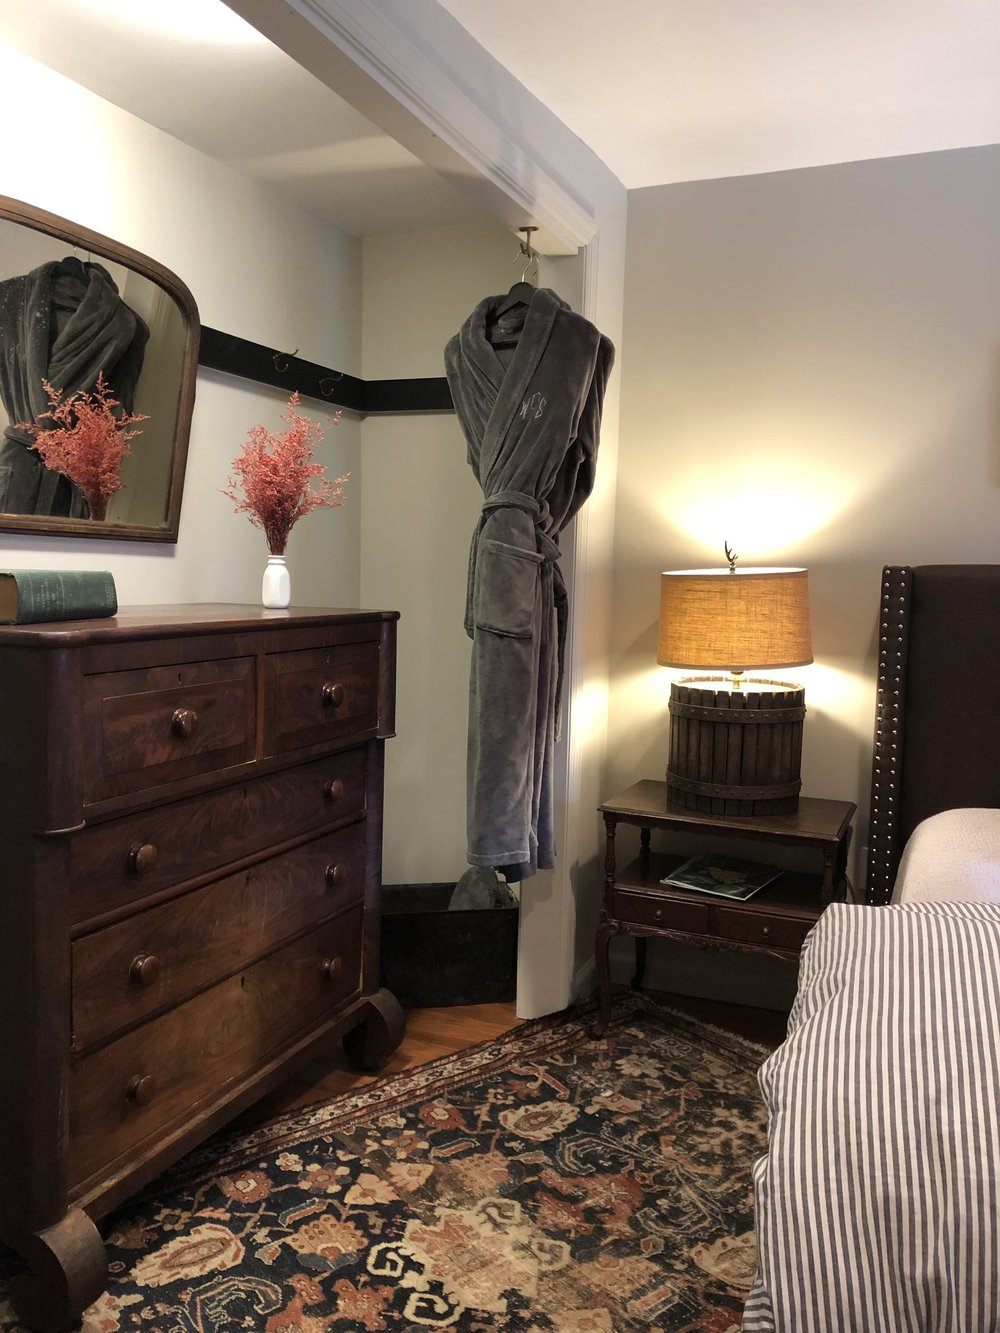 The Schooner Suite bedroom with antique rug and dresser, mirror and two plush robes.